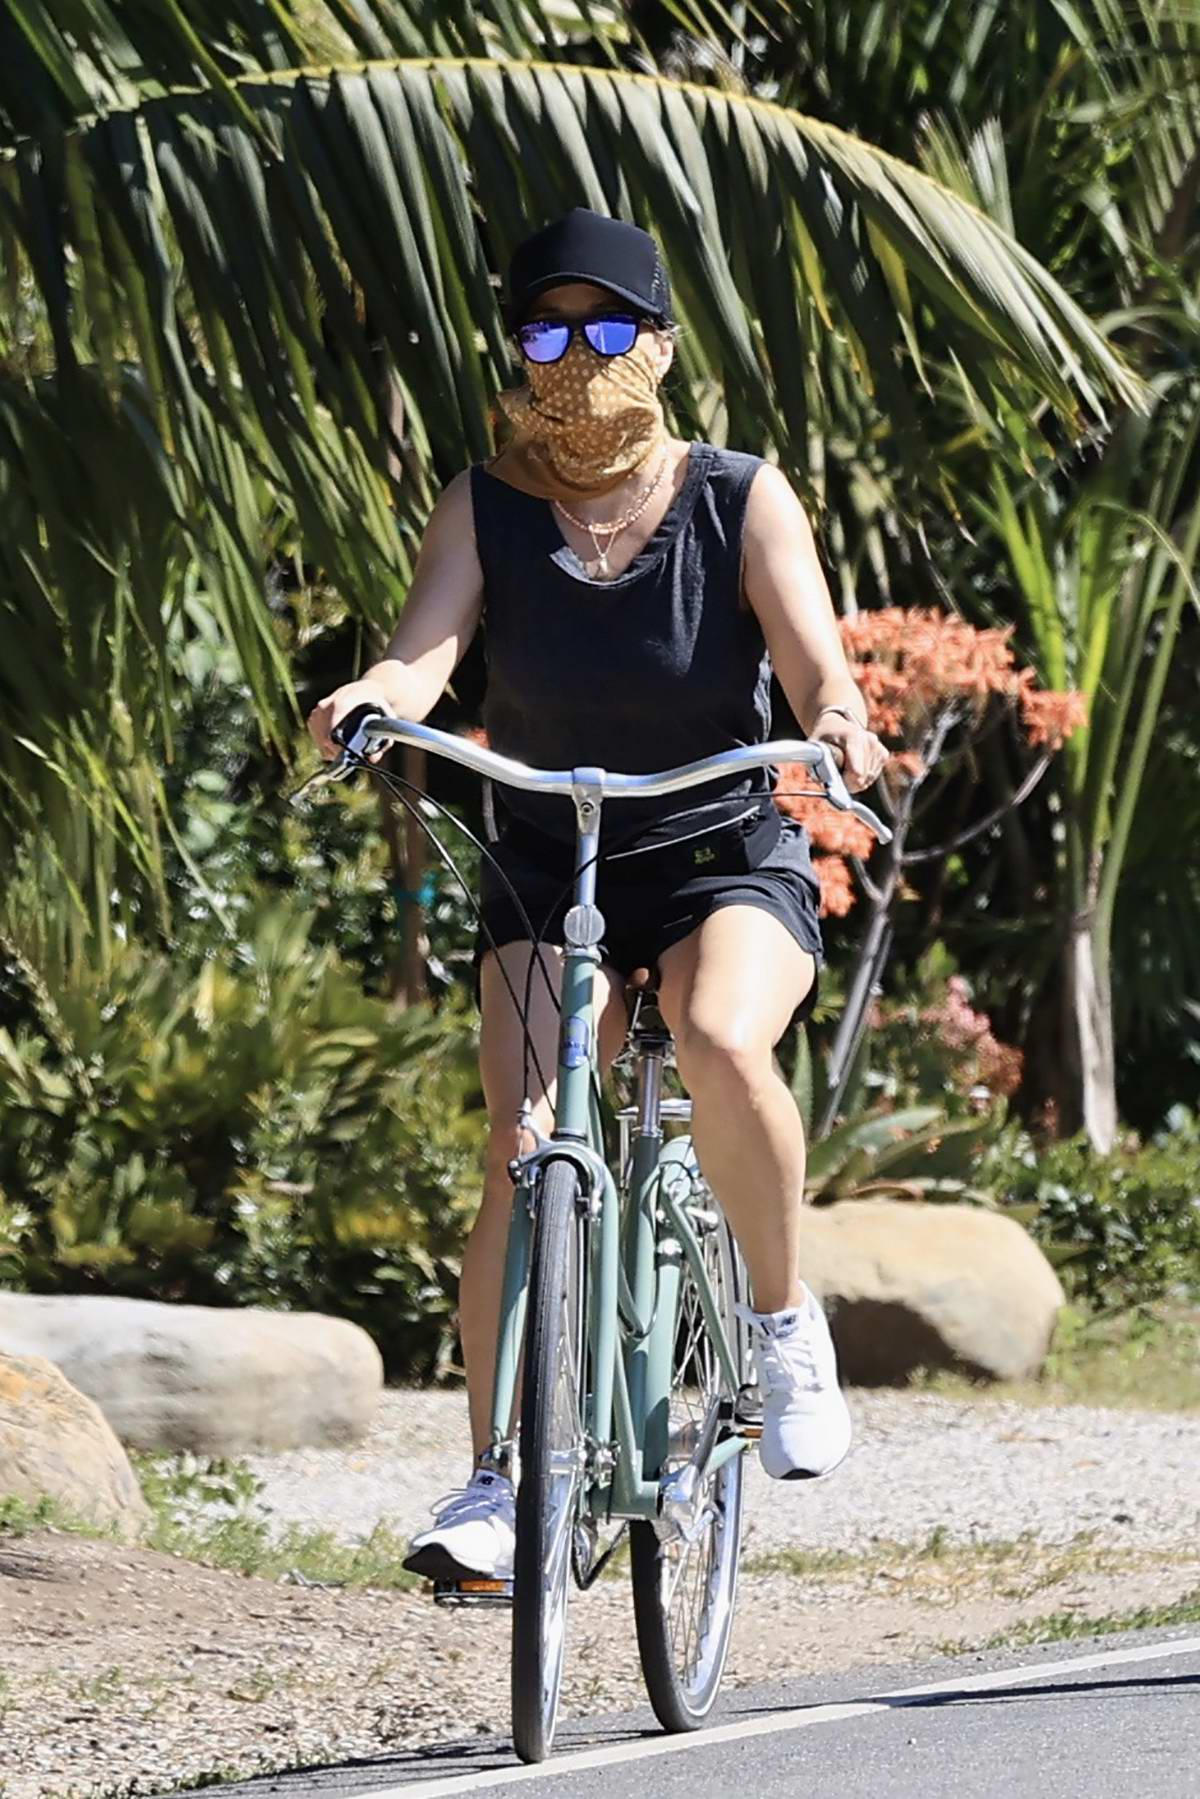 Reese Witherspoon enjoys a bike ride with her son Deacon Phillippe in Malibu, California